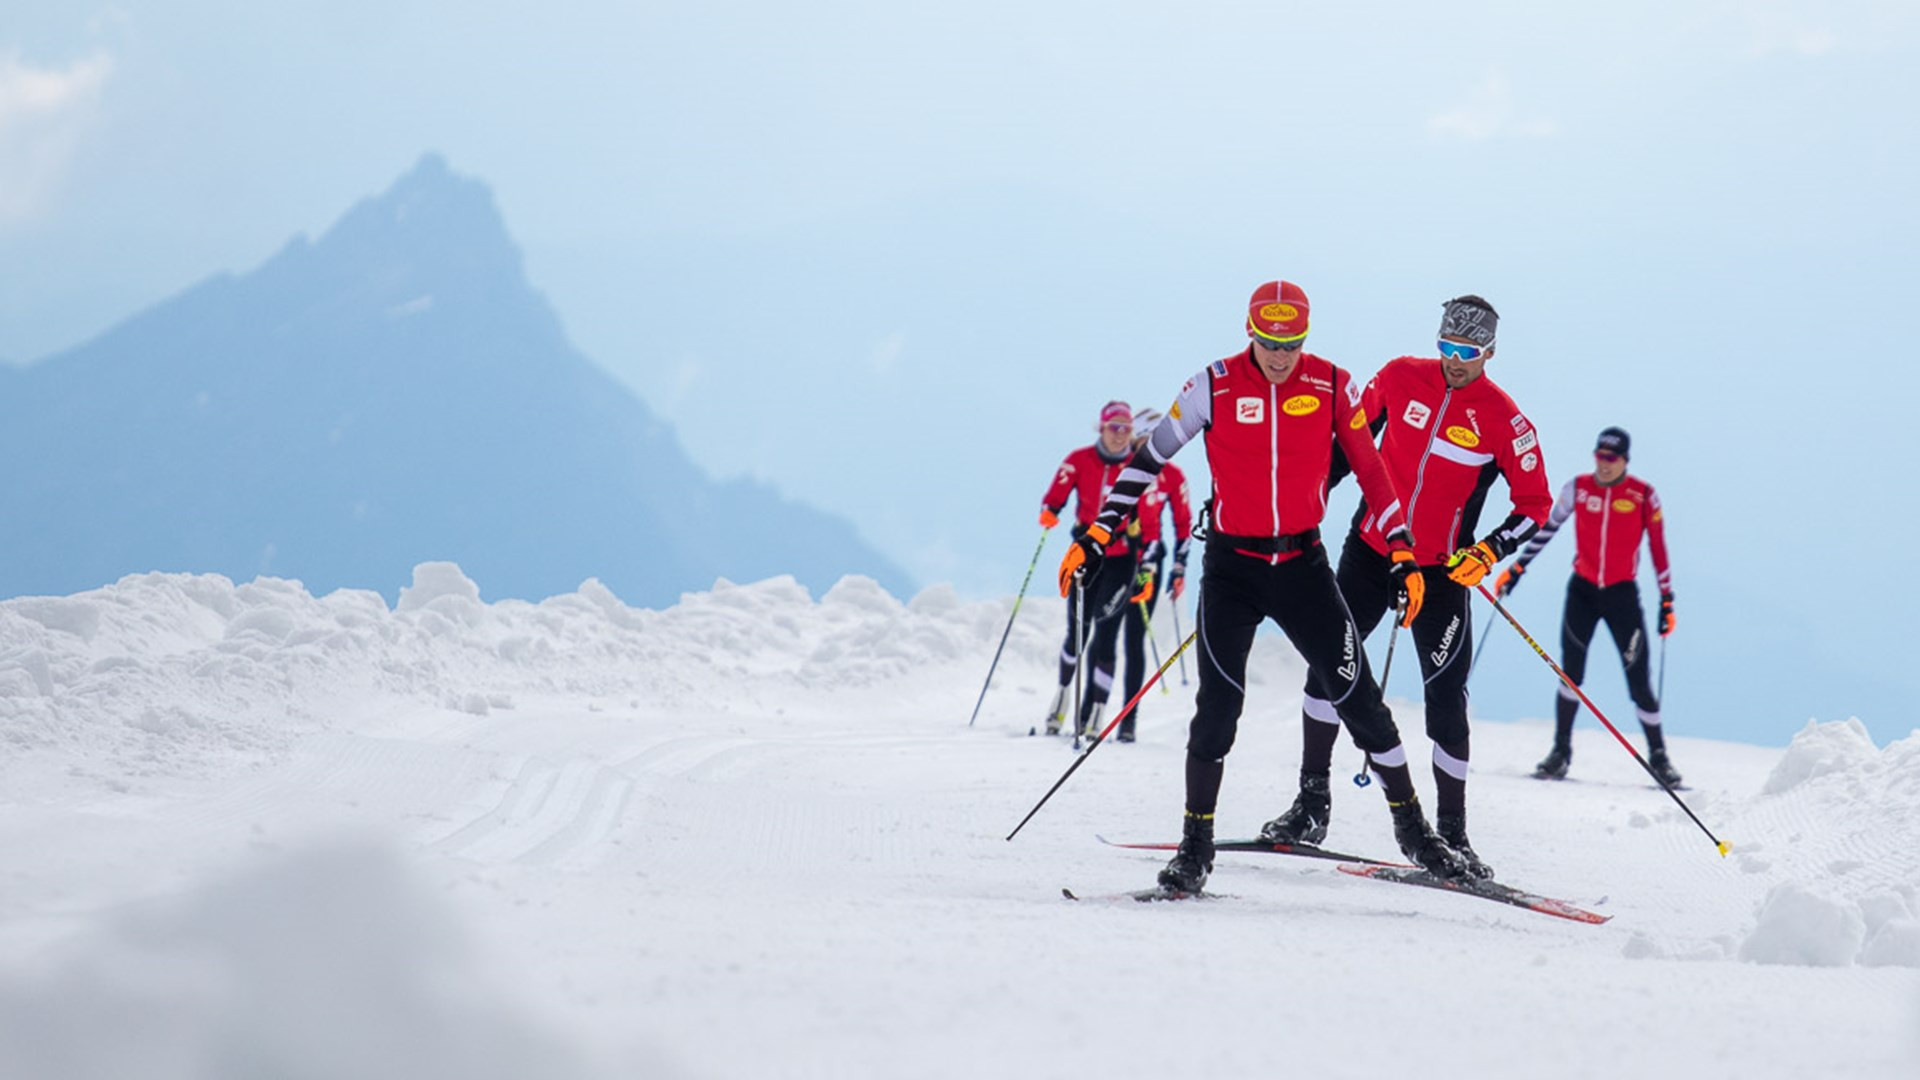 Austrian Nordic combined team able to train as a group on Dachstein Glacier